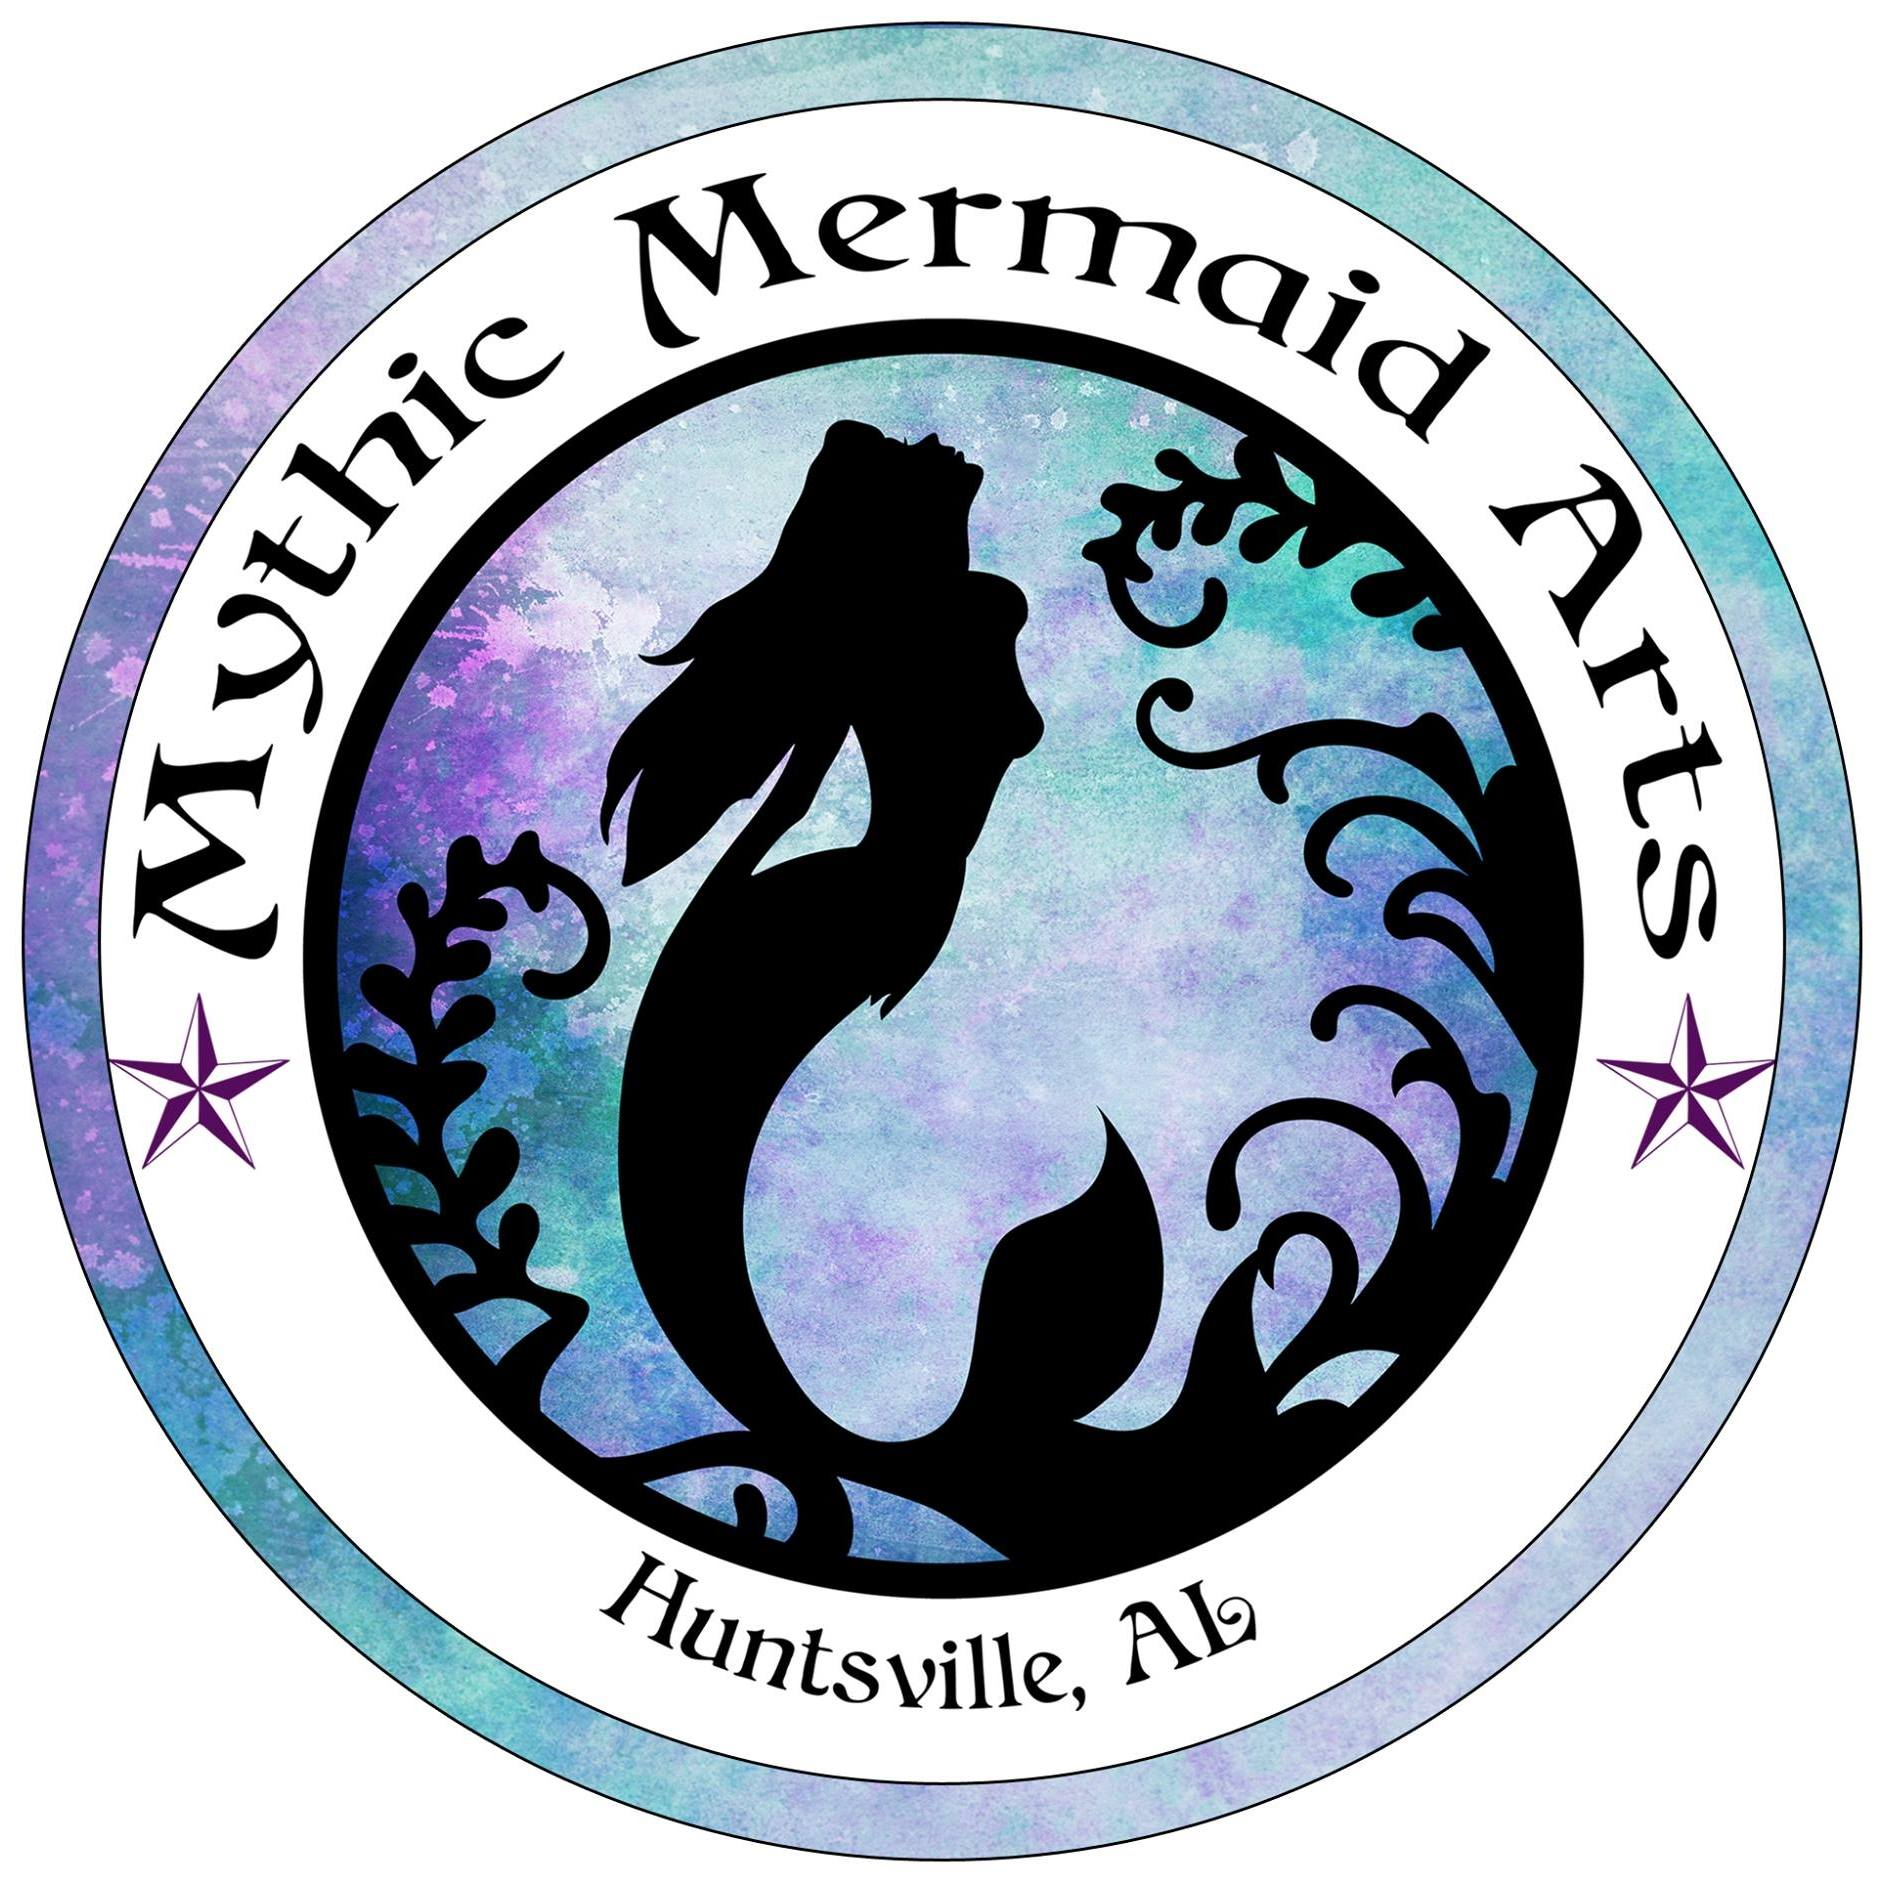 Mythic Mermaid Arts - Studio 273more info coming soon!